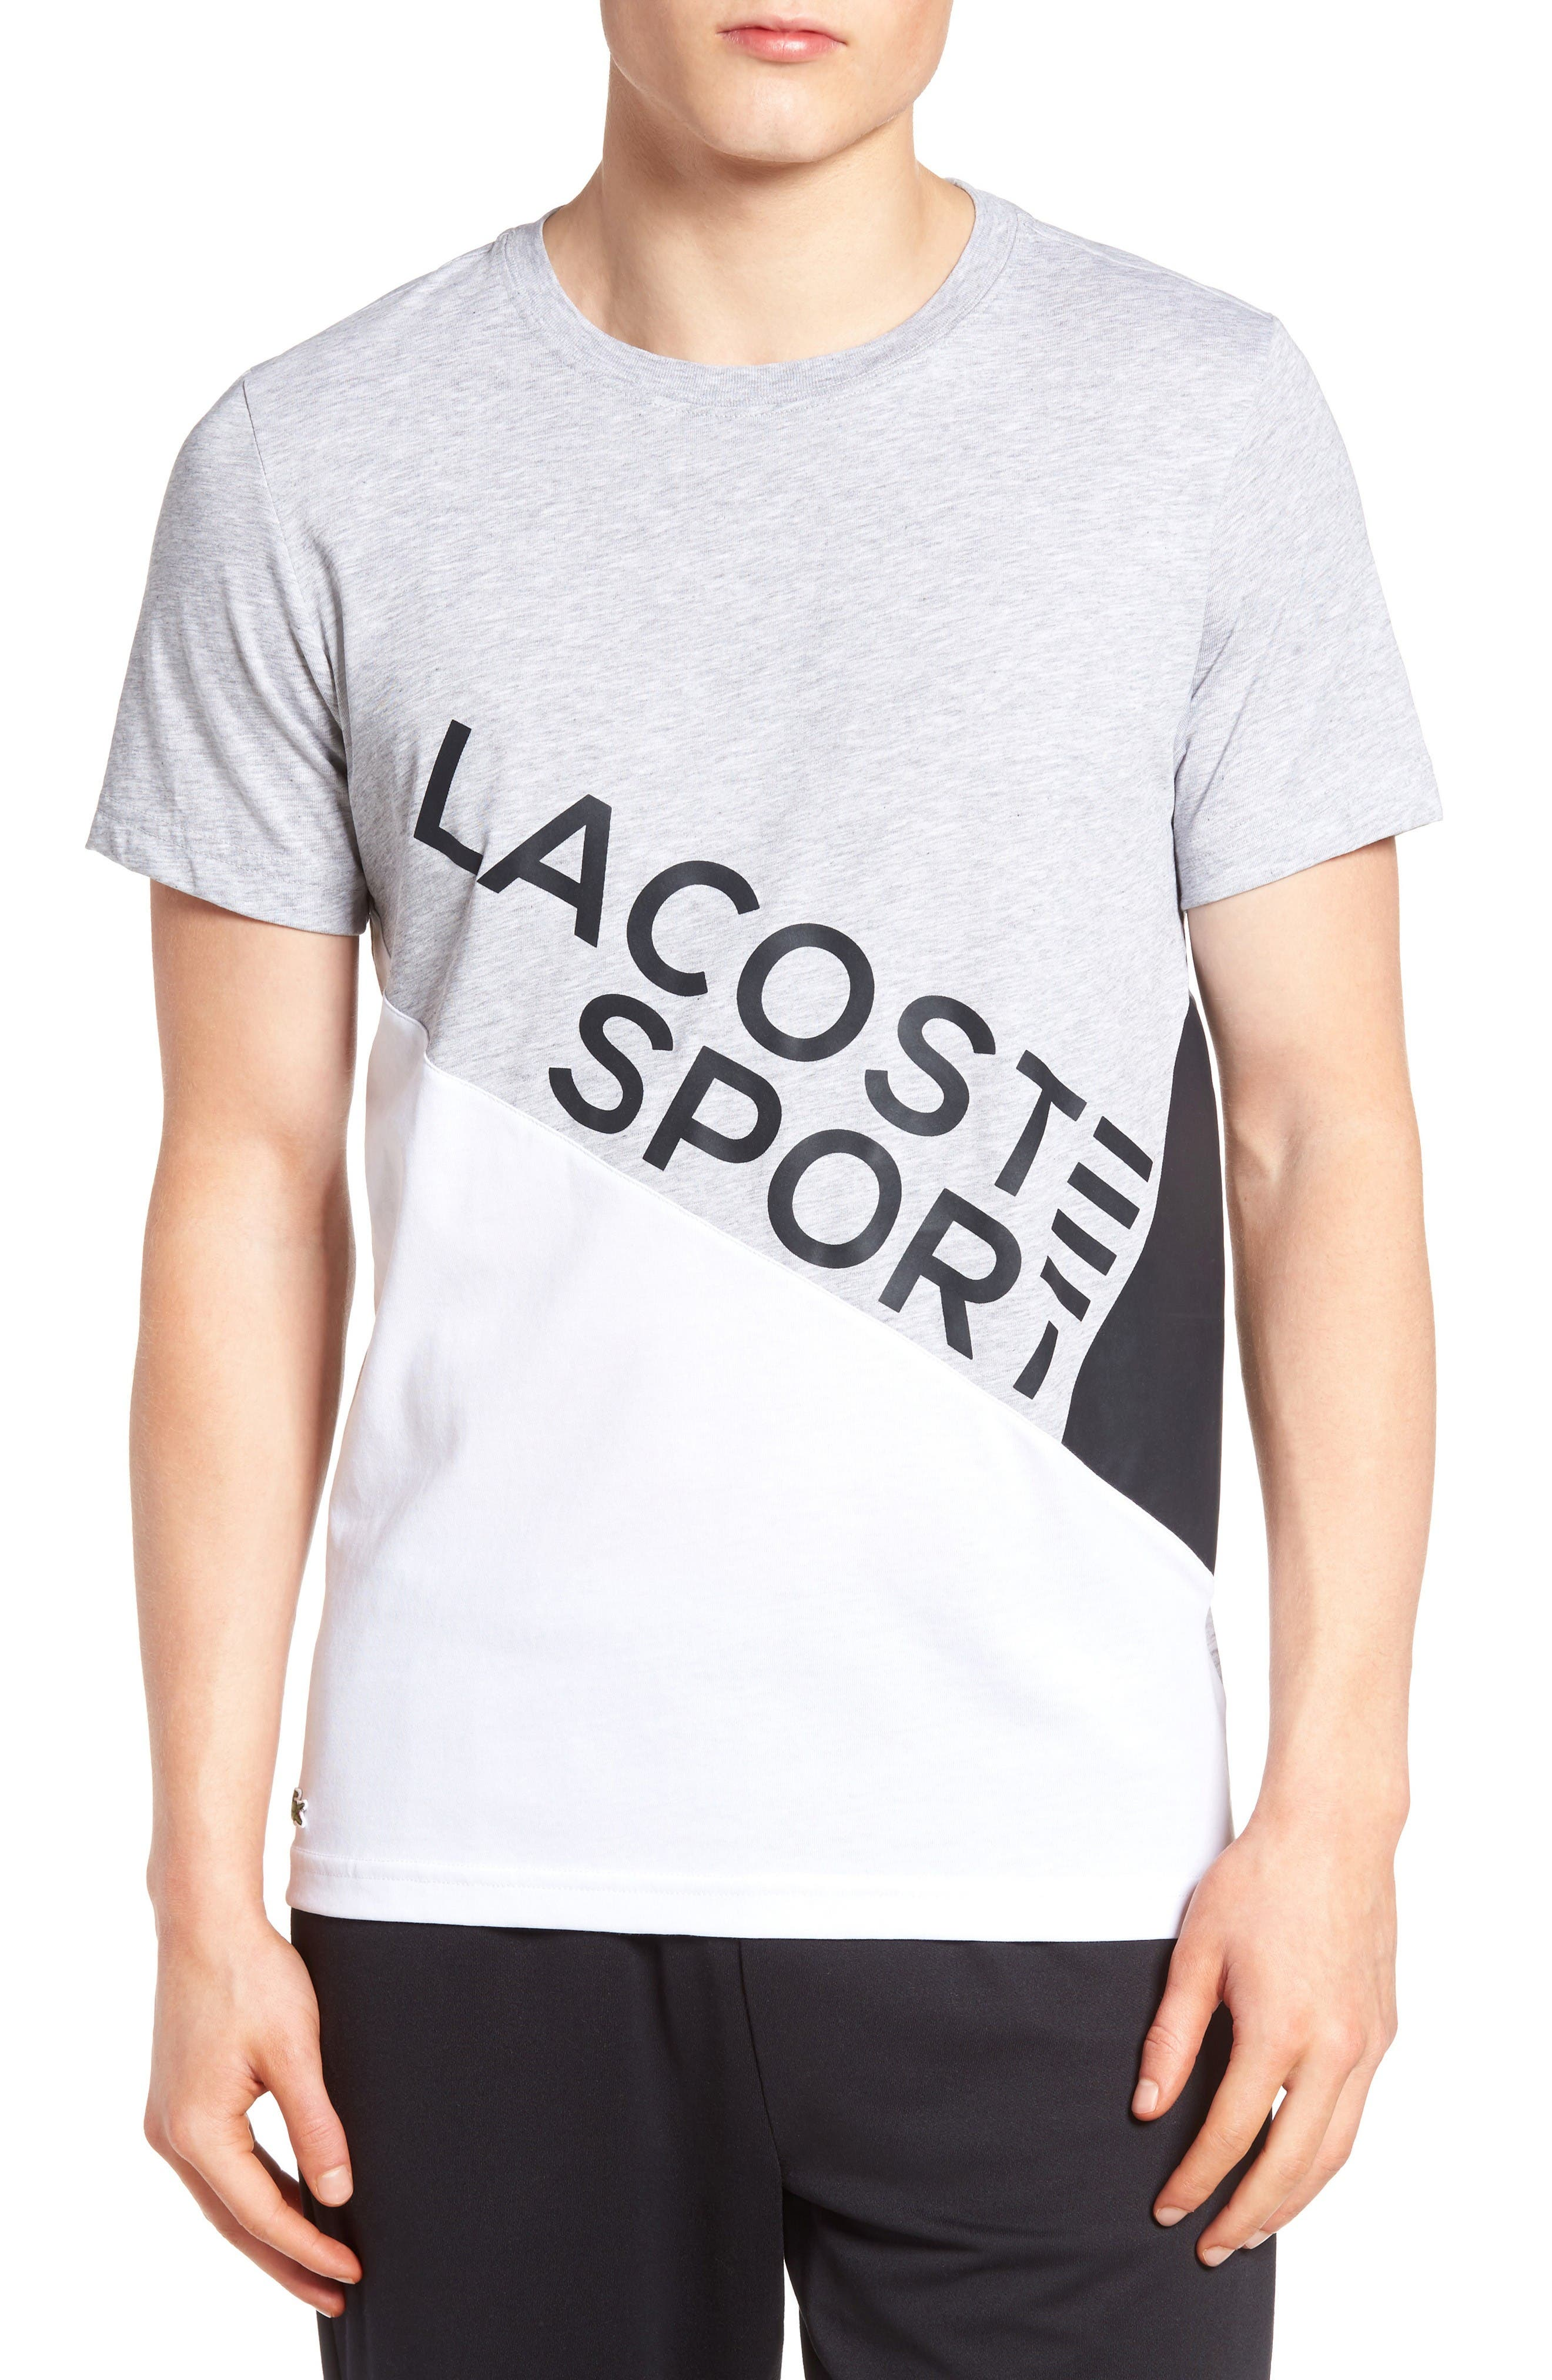 Lifestyle Sport Graphic T-Shirt,                         Main,                         color, Silver Chine/ White/ Black